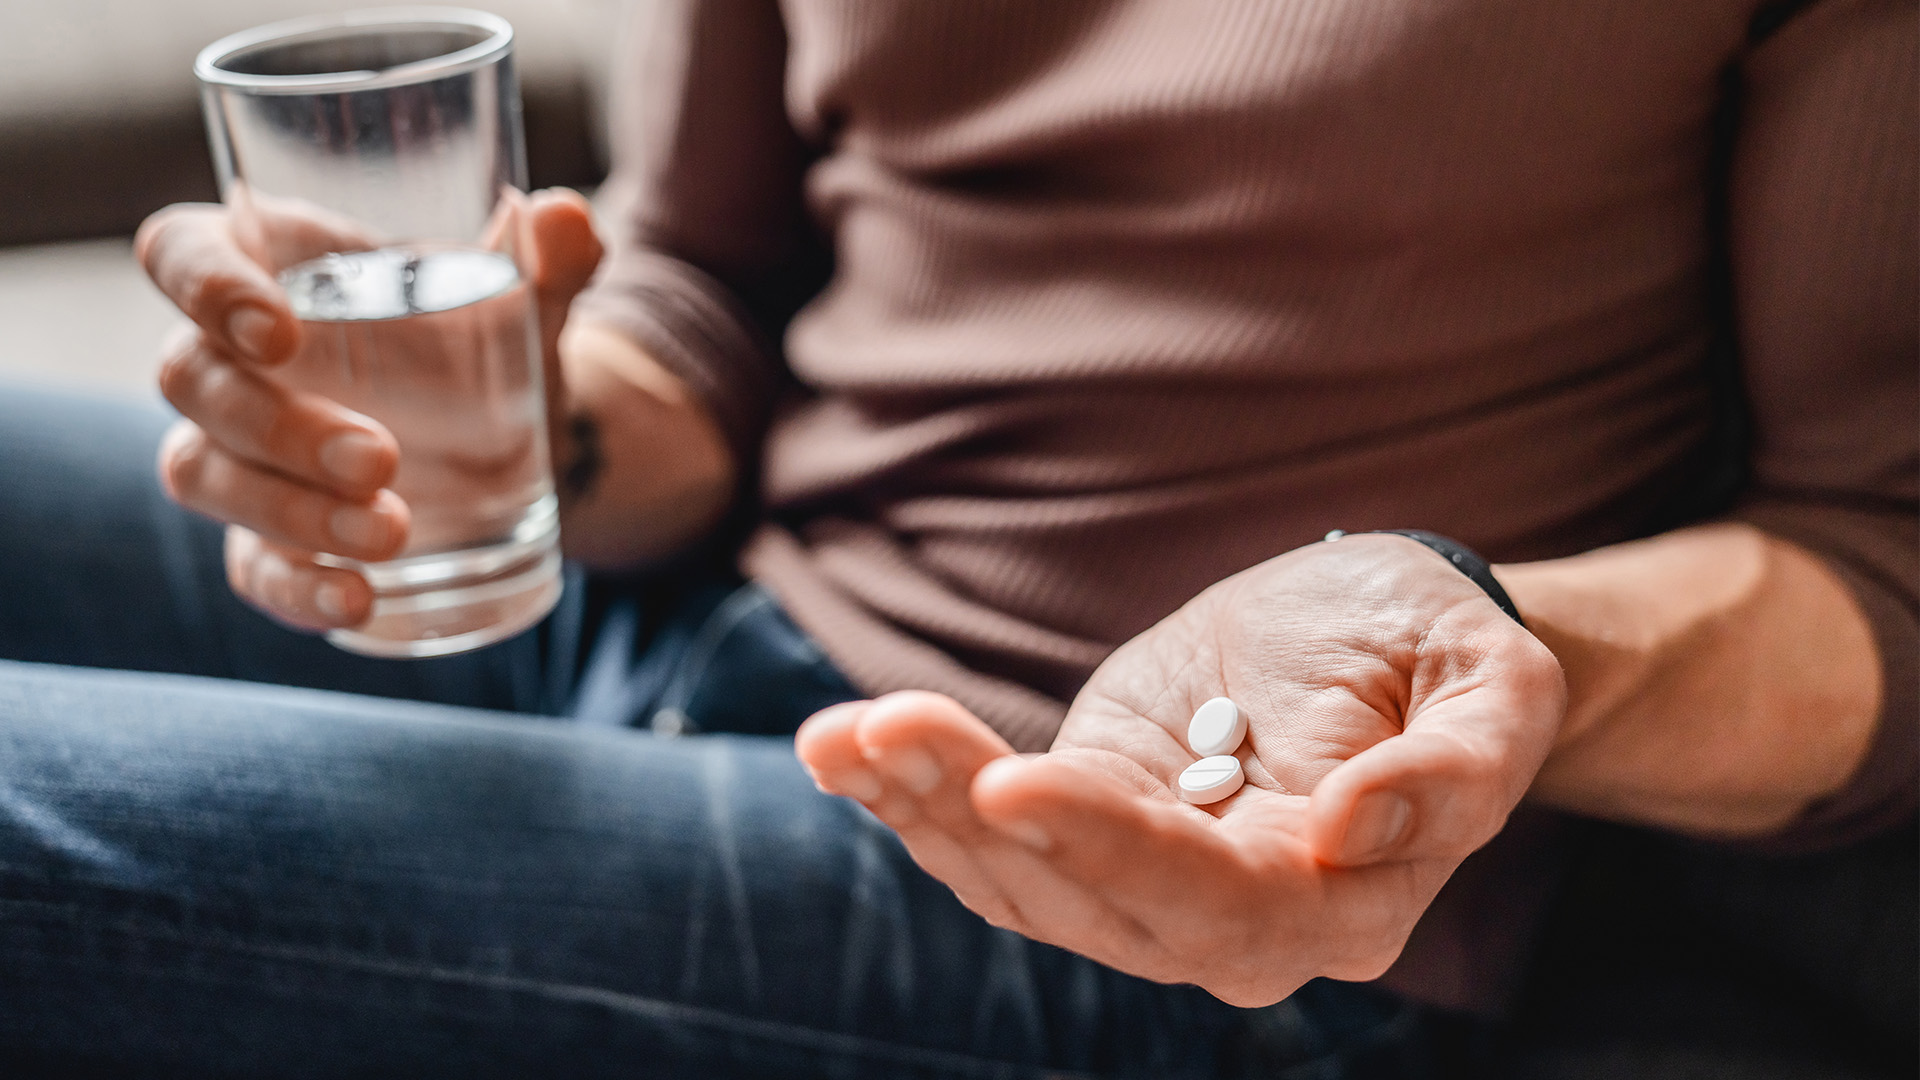 Taking Low-Dose Aspirin To Prevent Heart Disease? New Recommendations Under Review